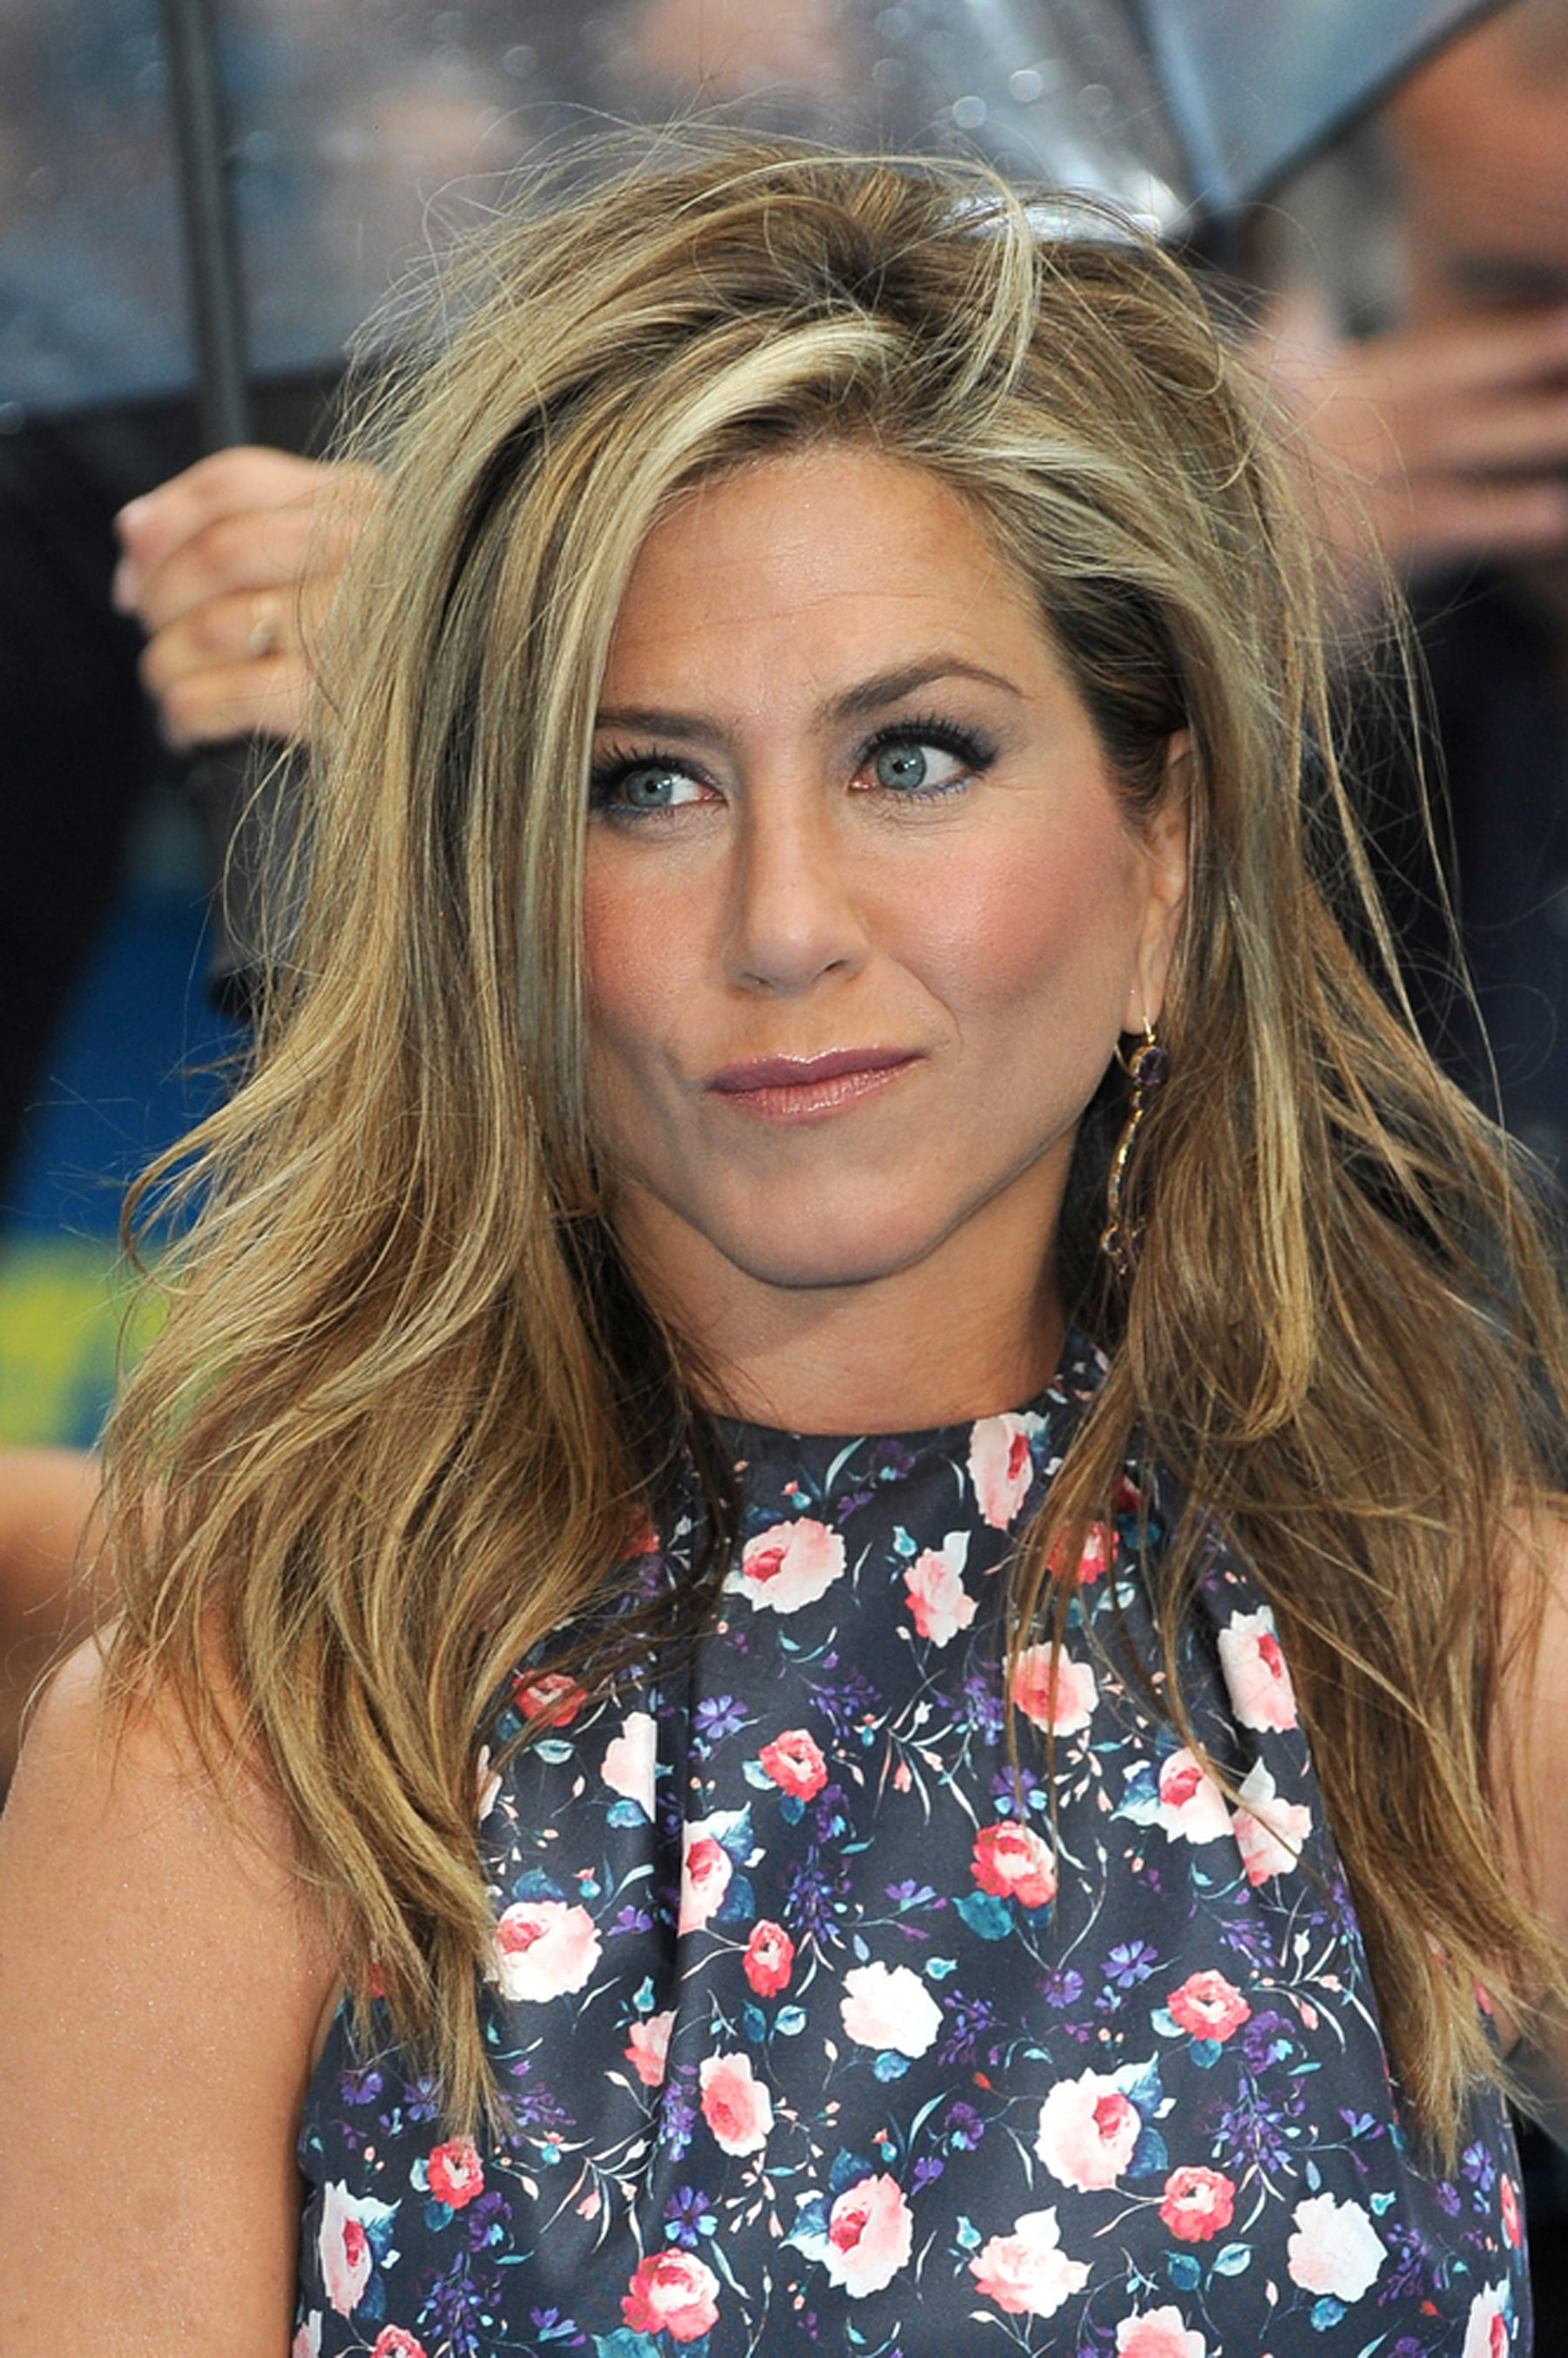 jennifer aniston gehen die haare aus. Black Bedroom Furniture Sets. Home Design Ideas